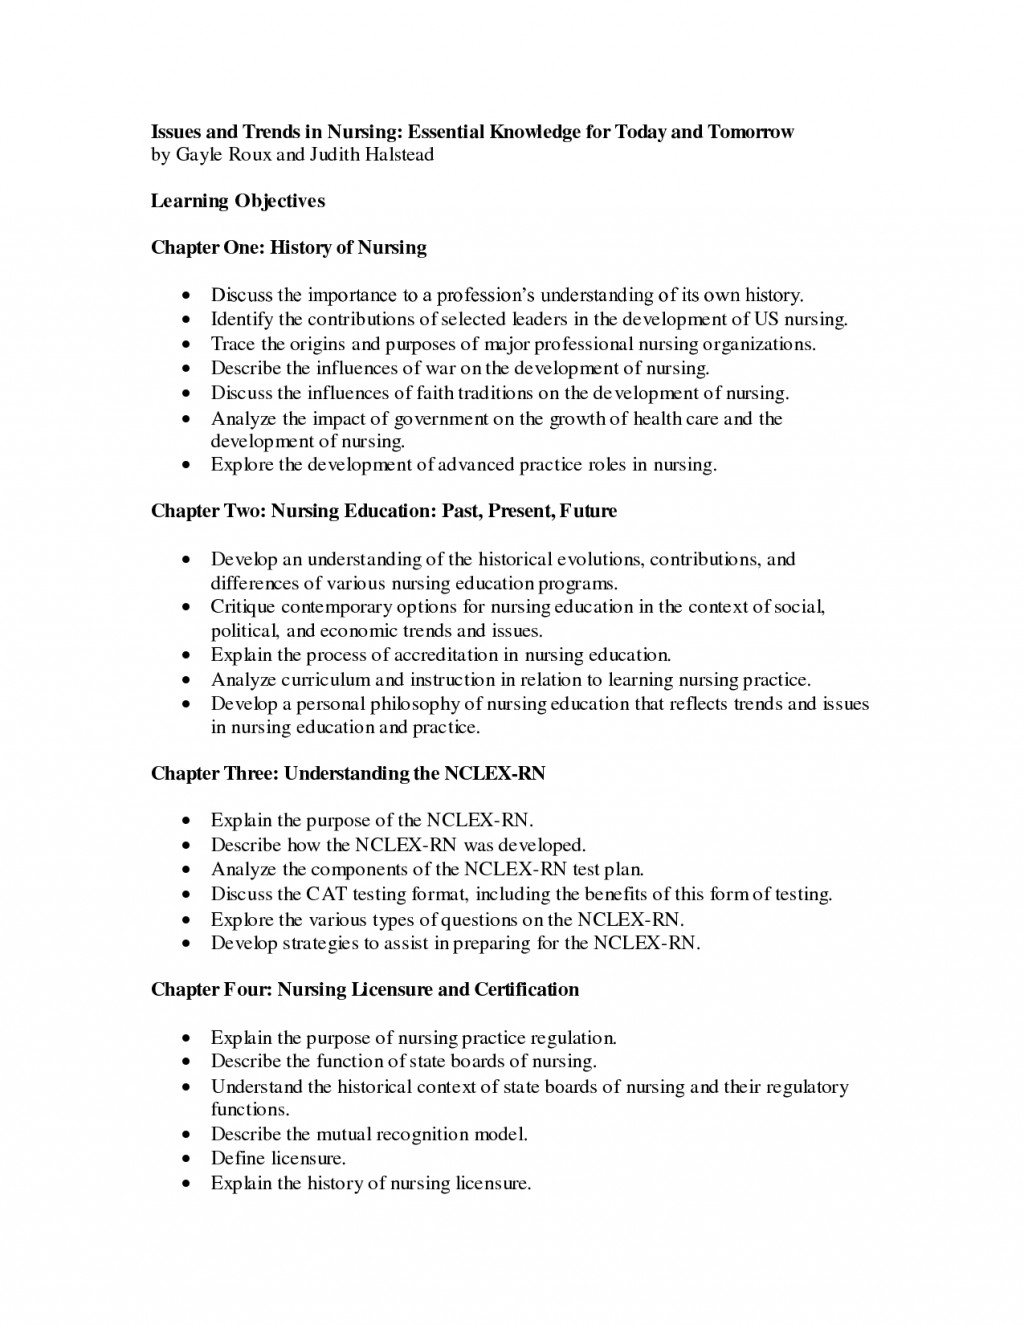 002 Educational Research Paper Magnificent Example Special Education Examples Abstract Sample Management Large